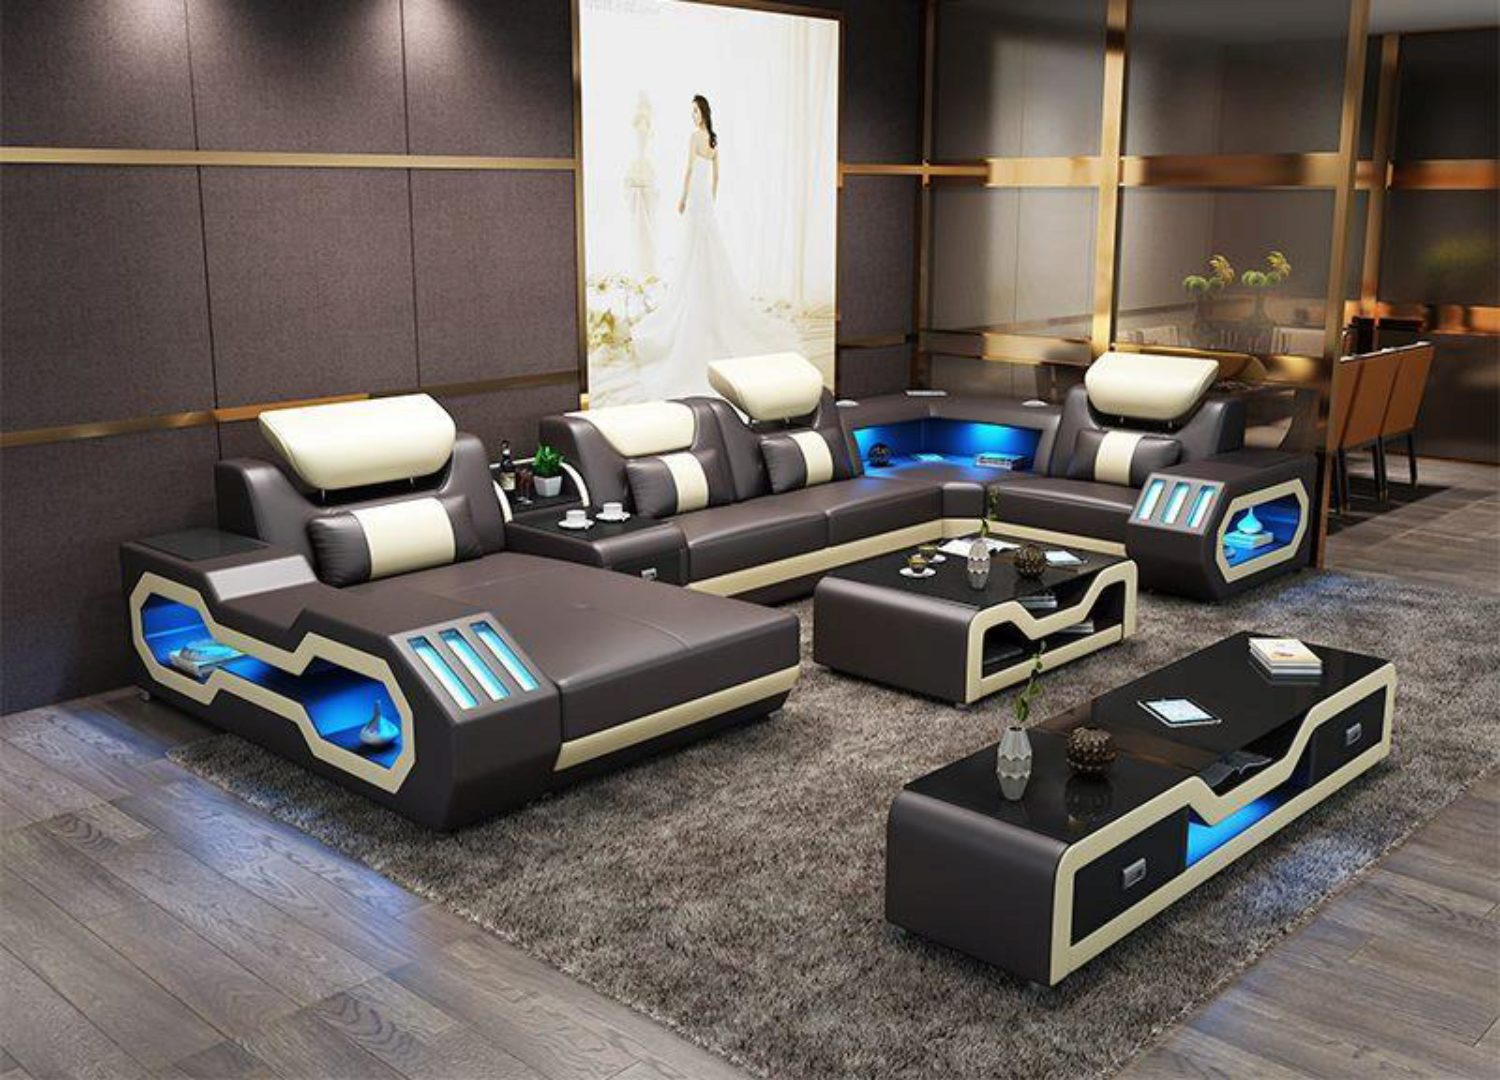 Grey Top Leather Sectional Sofa Led Light Maxwest P866 Ultra Modern P866